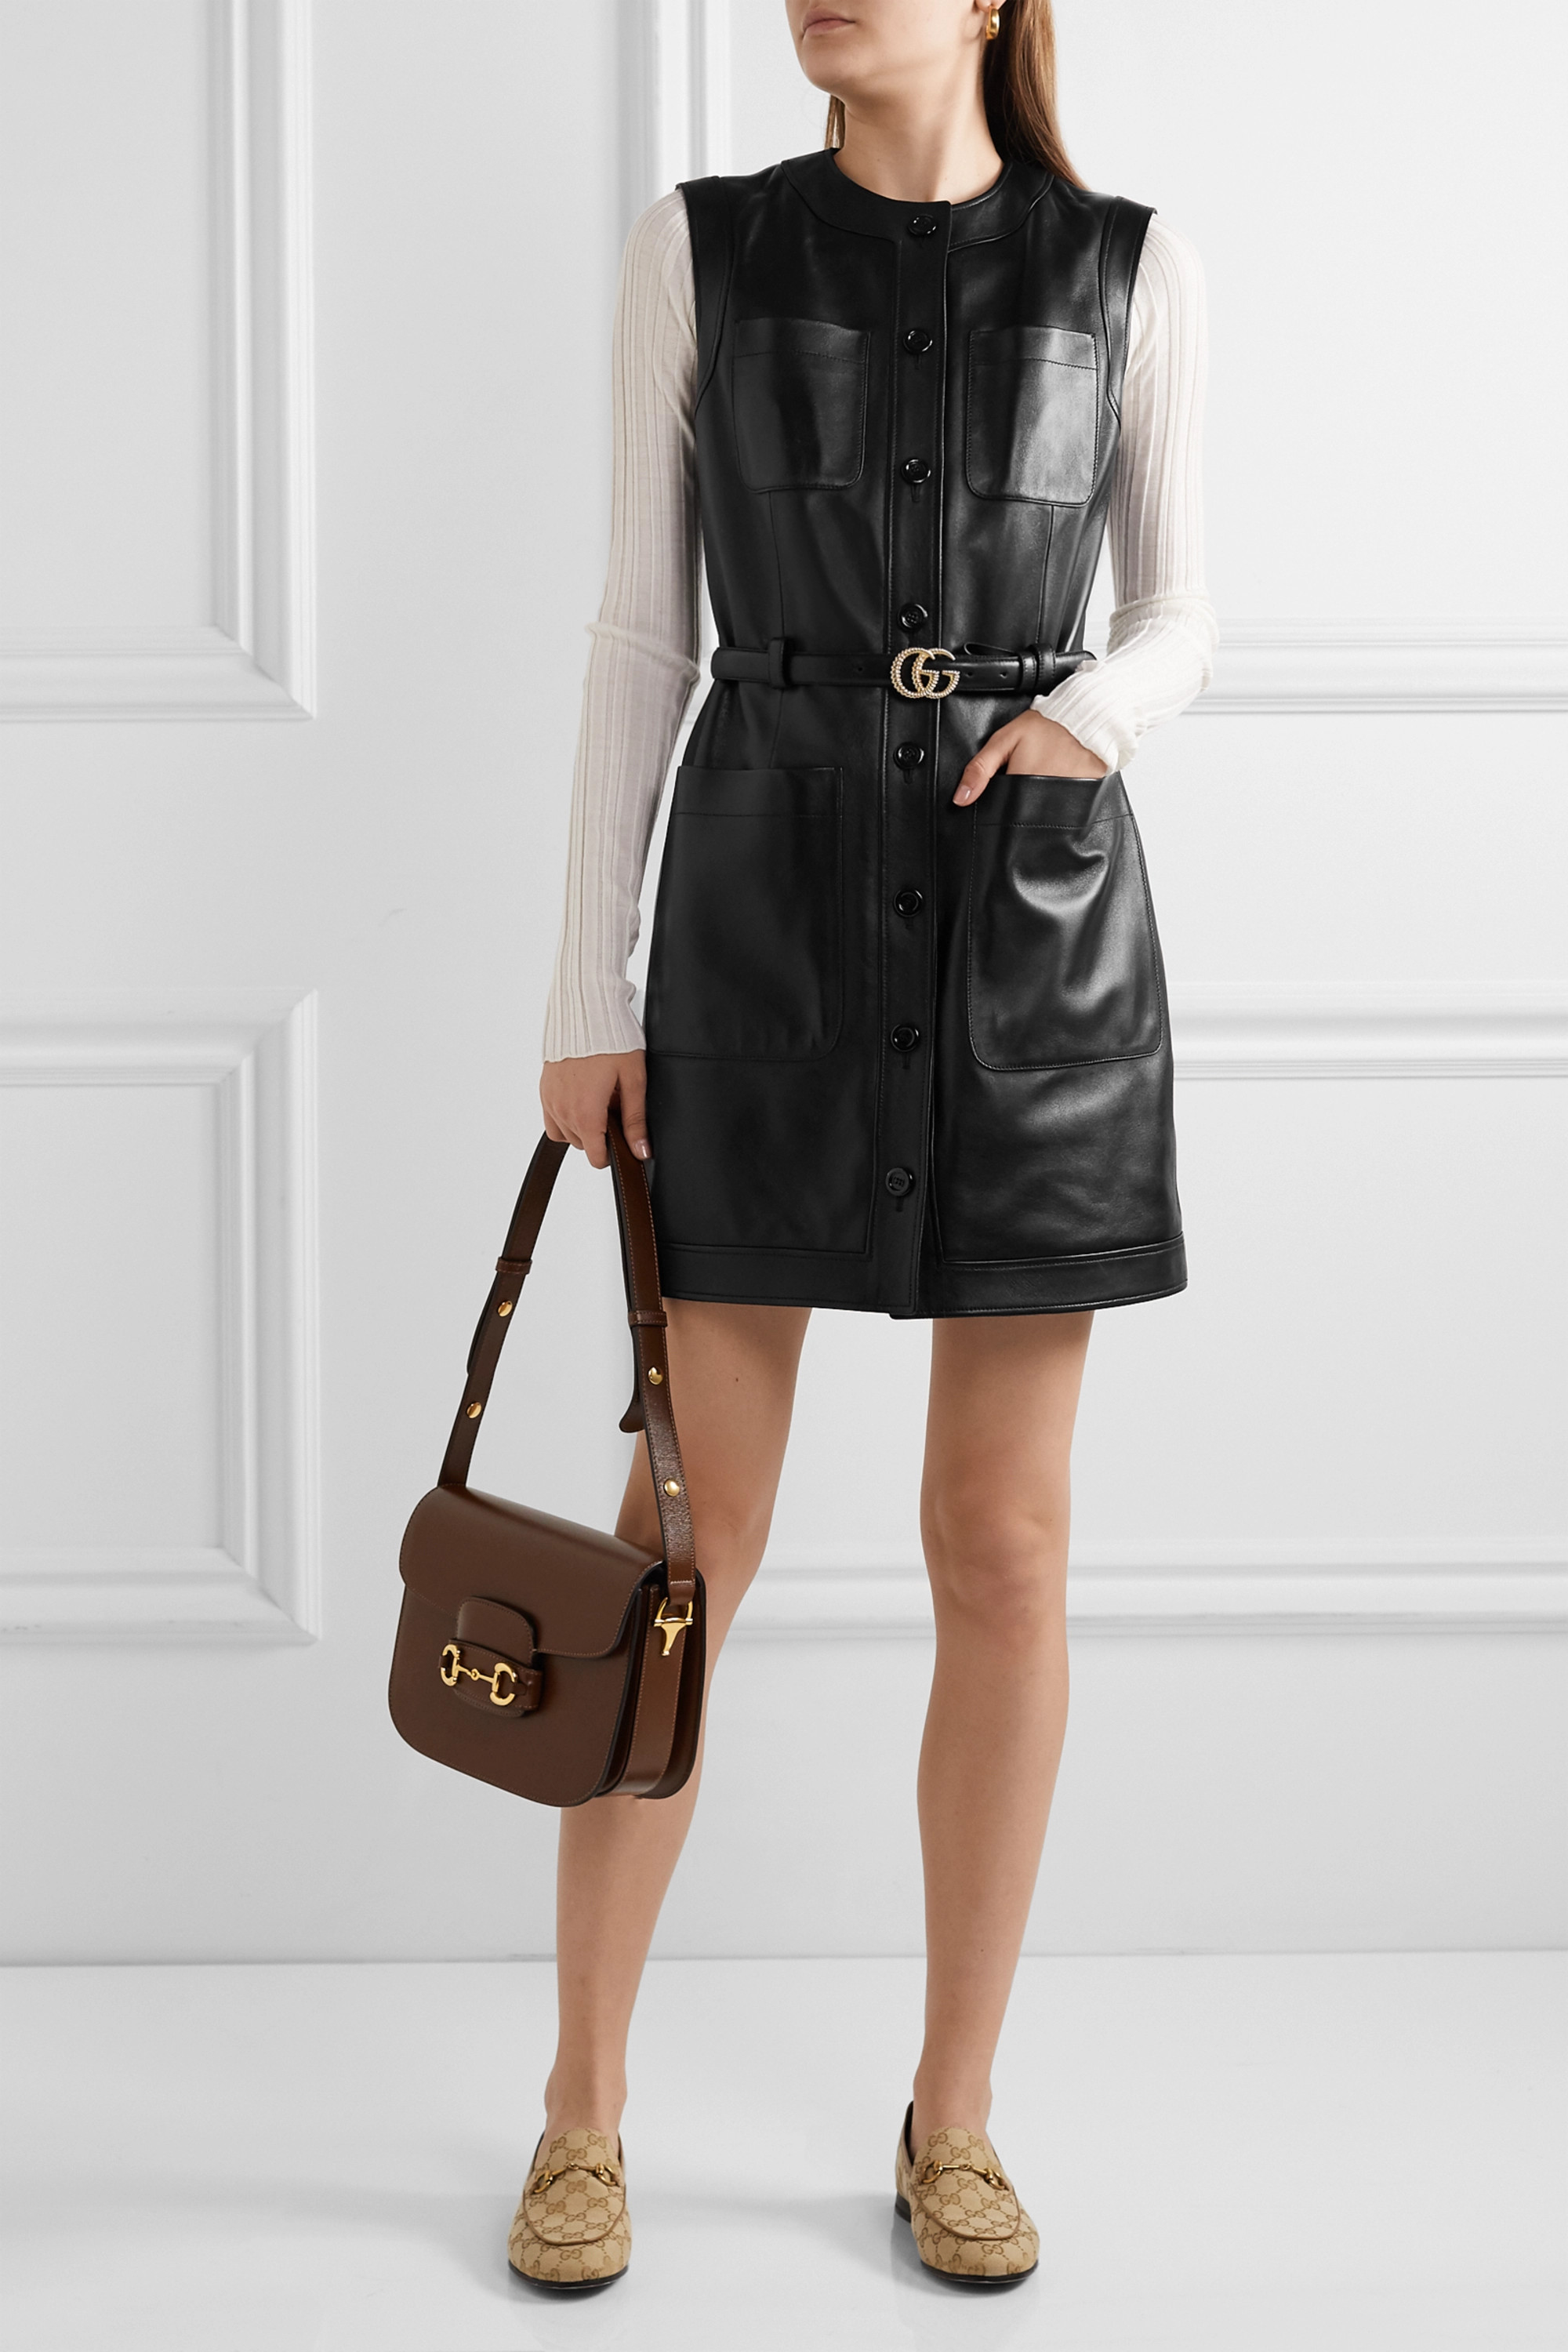 Gucci Belted leather mini dress